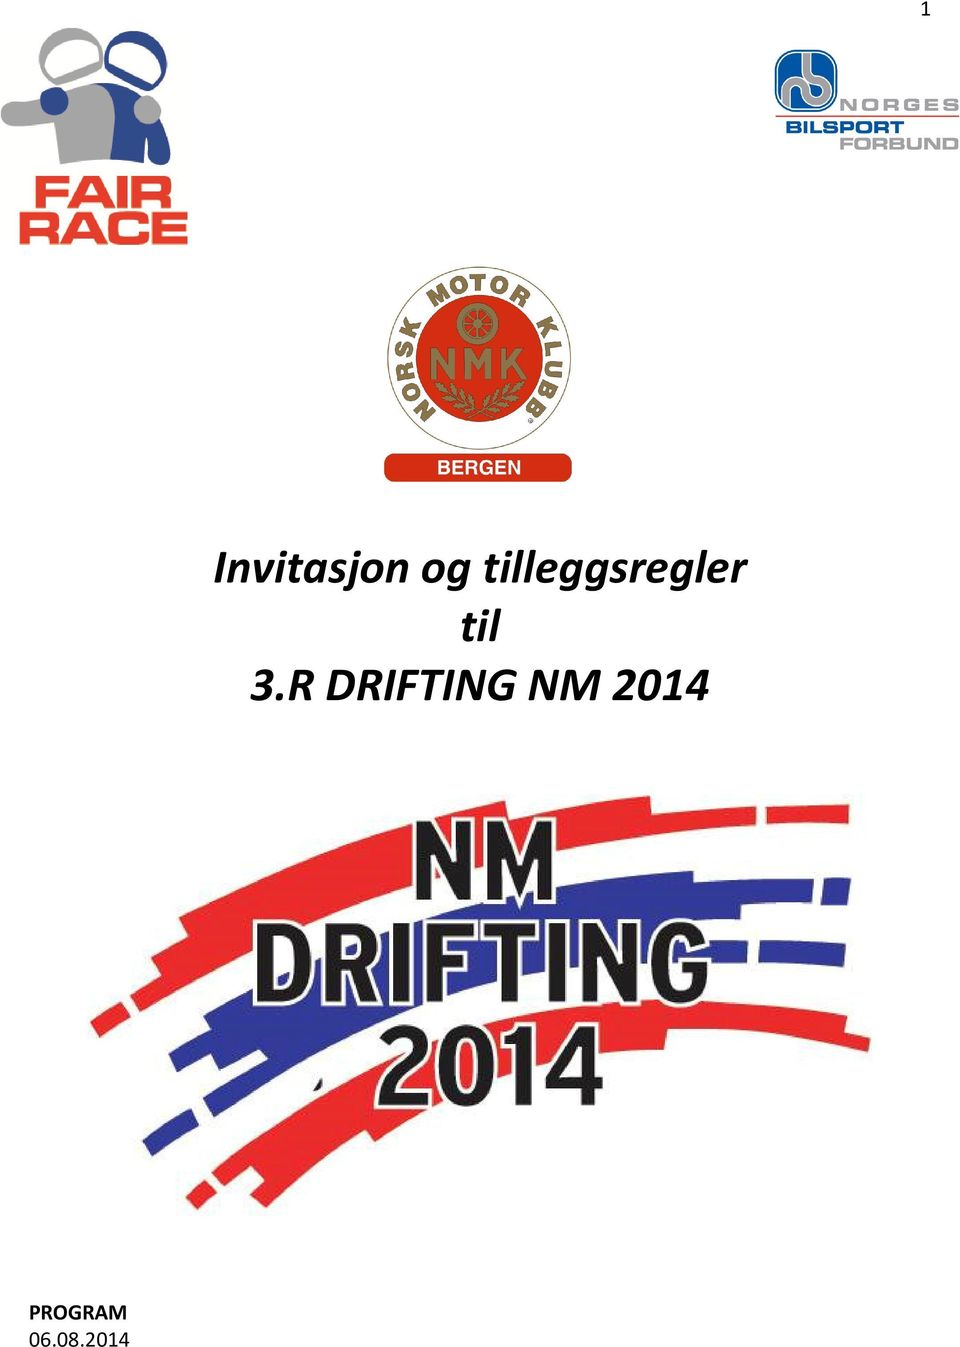 3.R DRIFTING NM